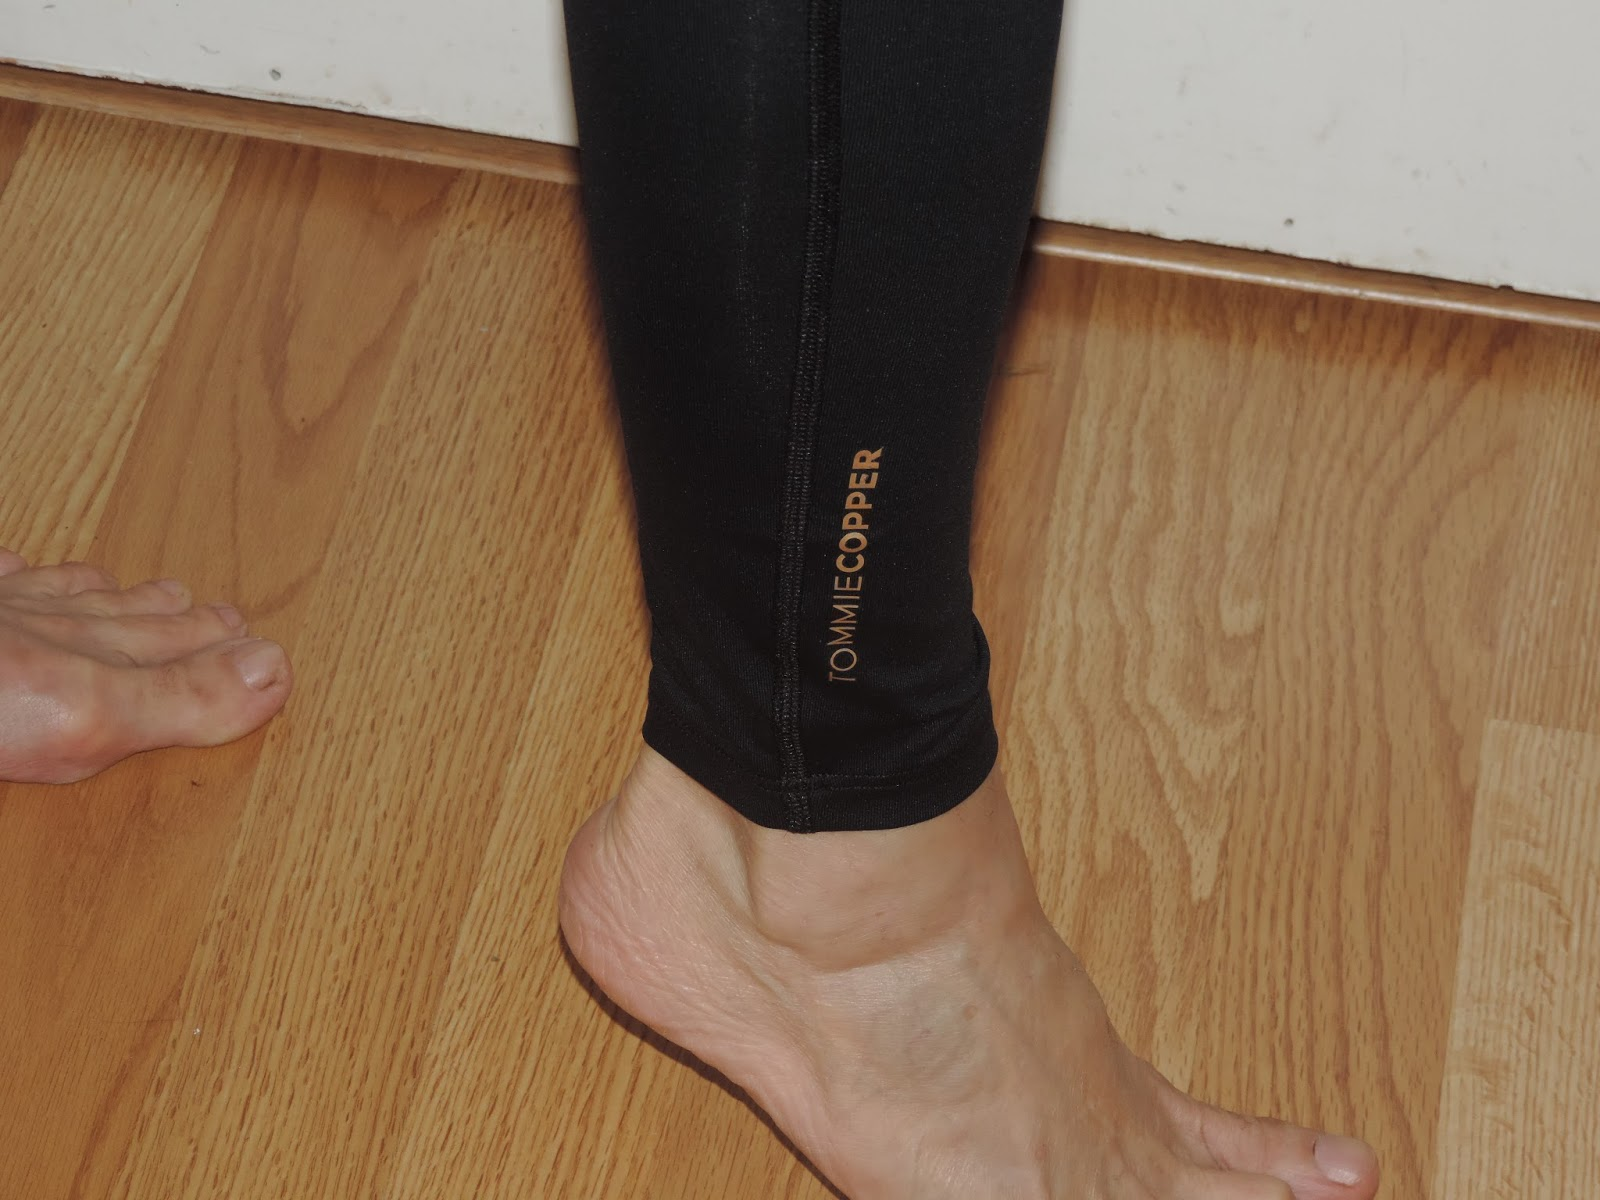 6e07b251611bc The length of the leggings is nice. You can see here they go all the way  down to my sister-in-laws's ankles.